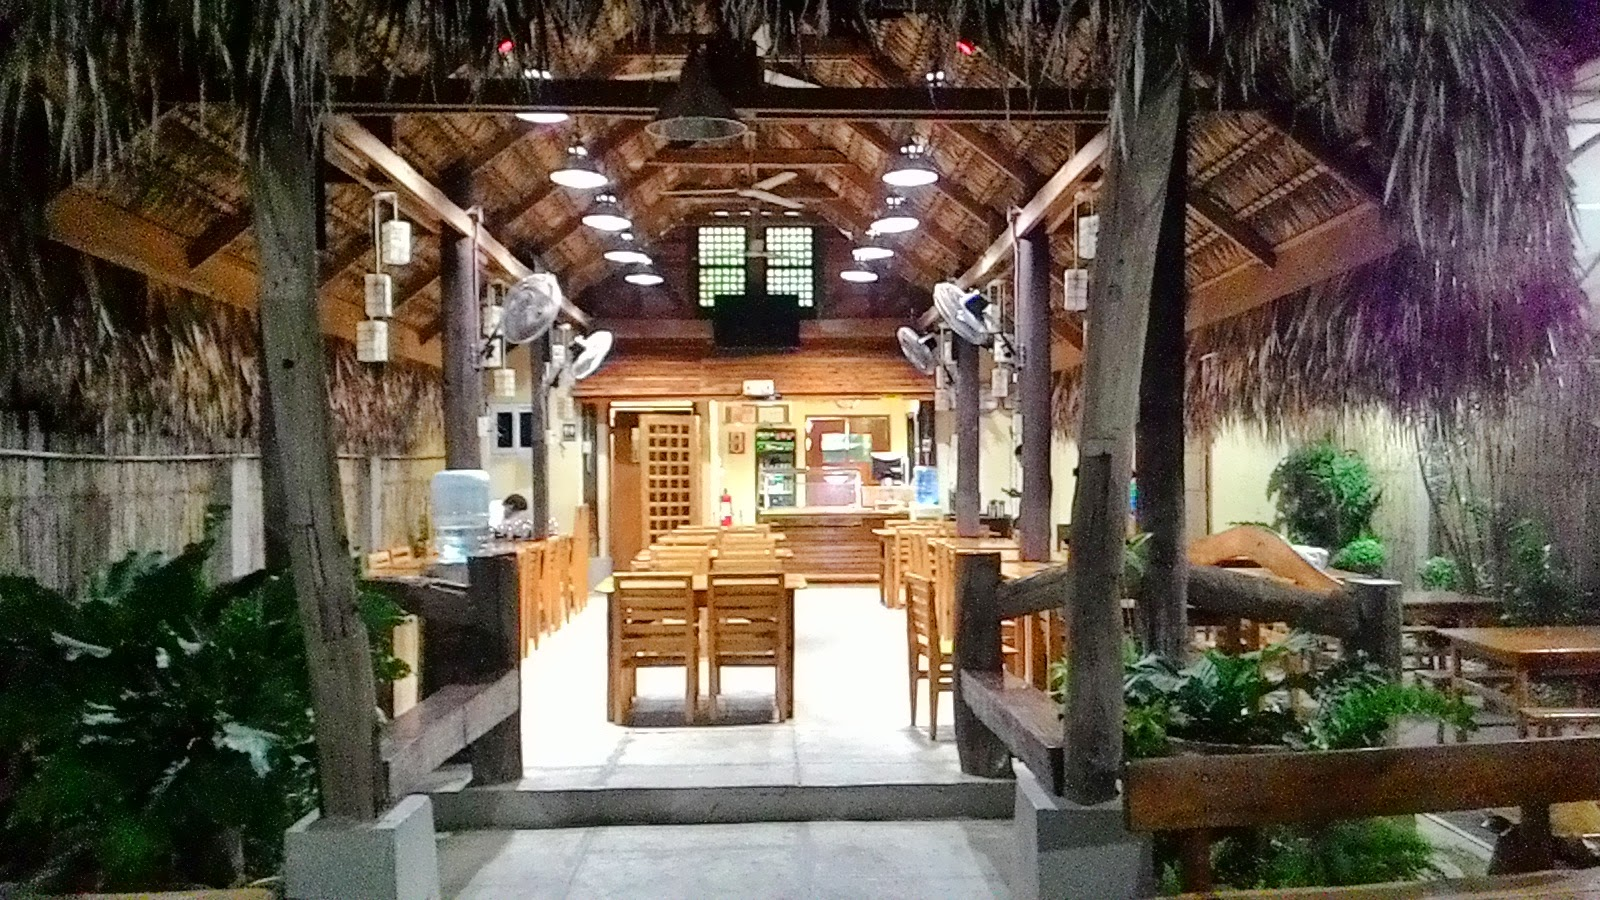 A long nipa hut houses the dining area of this restaurant wooden tables and chairs inside and outside the hut are available for customers